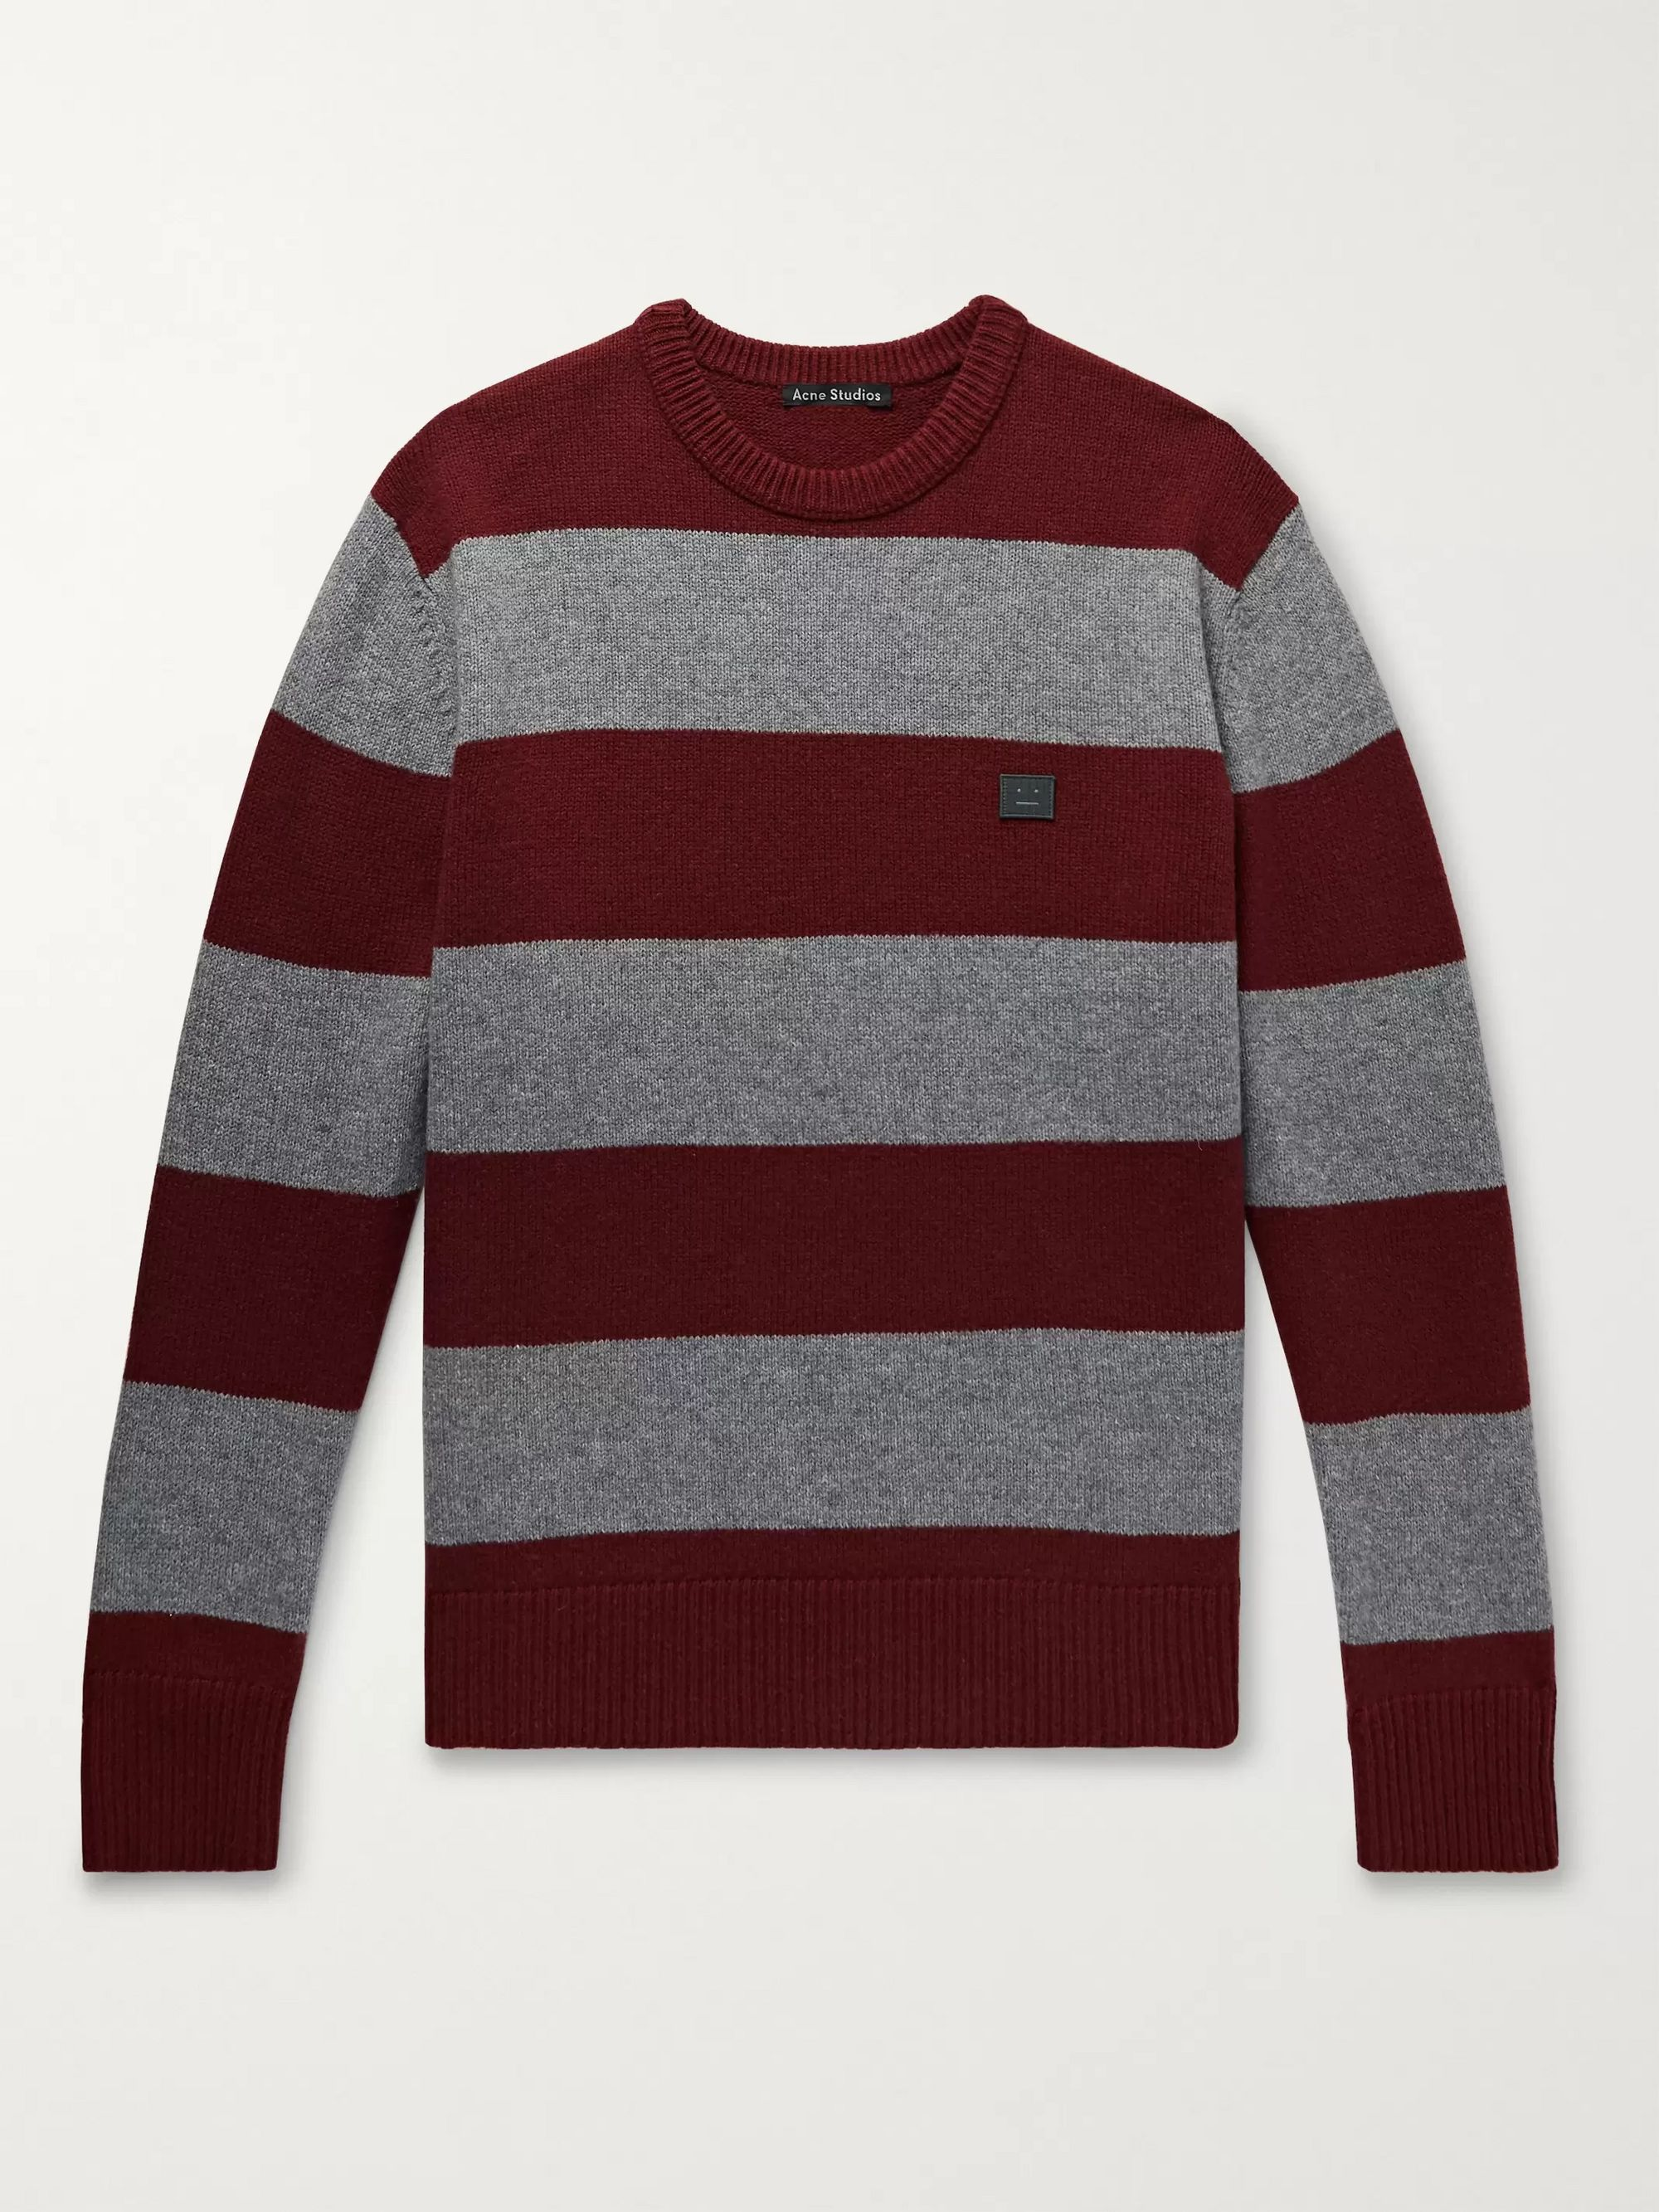 Logo Appliquéd Striped Wool Sweater by Acne Studios